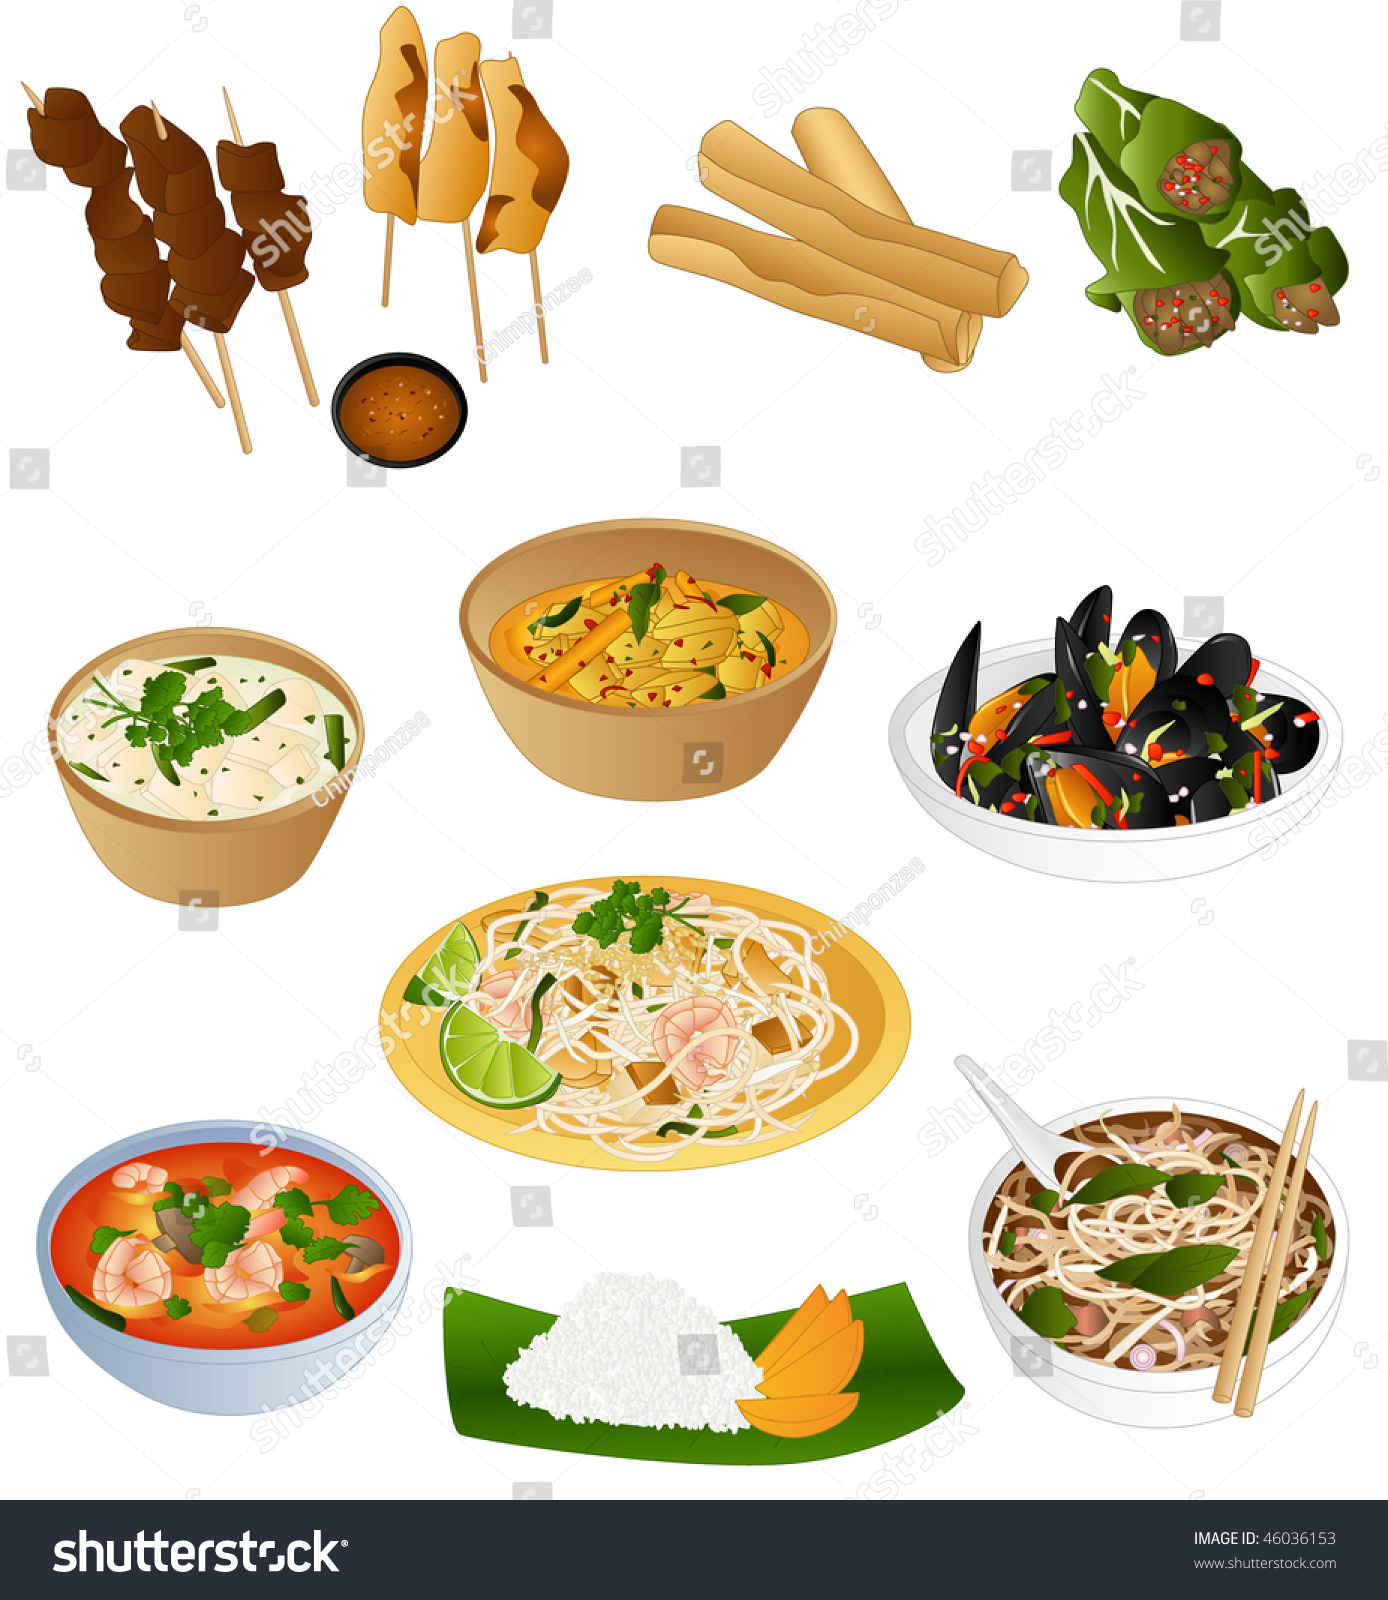 Online image photo editor shutterstock editor for Art of indian cuisine